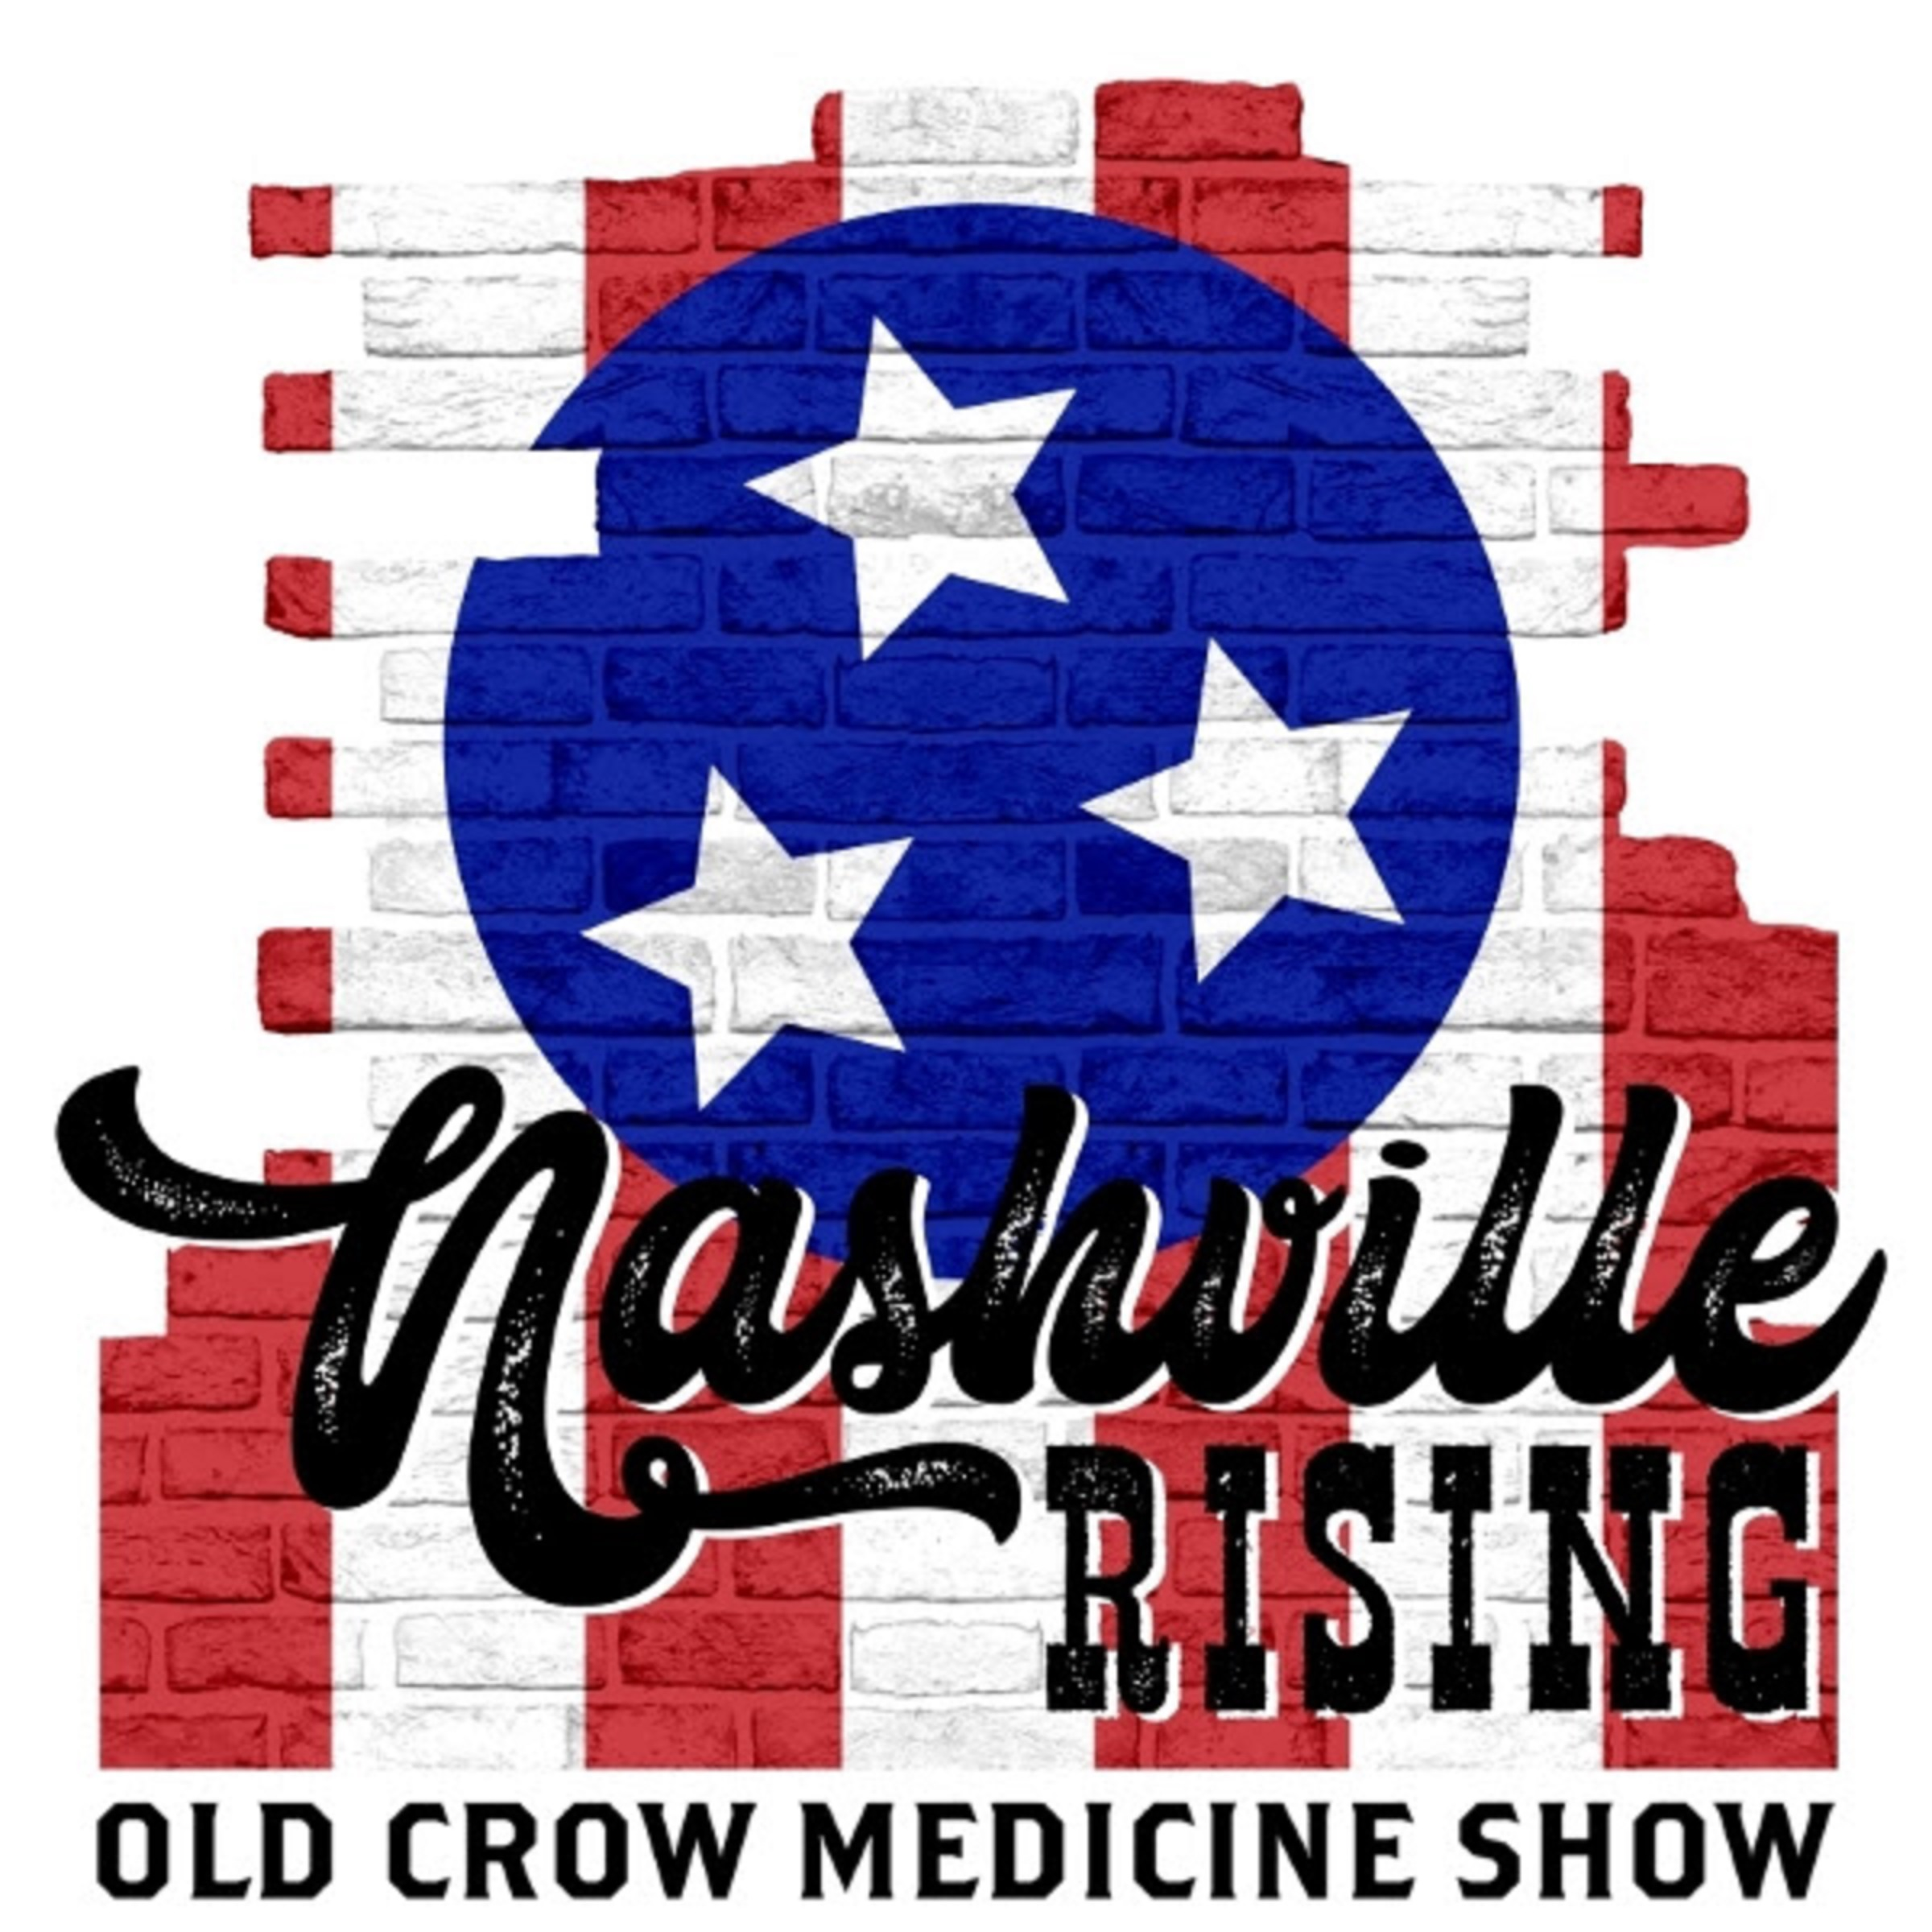 Old Crow Medicine Show Releases Uplifting Roots Anthem NASHVILLE RISING